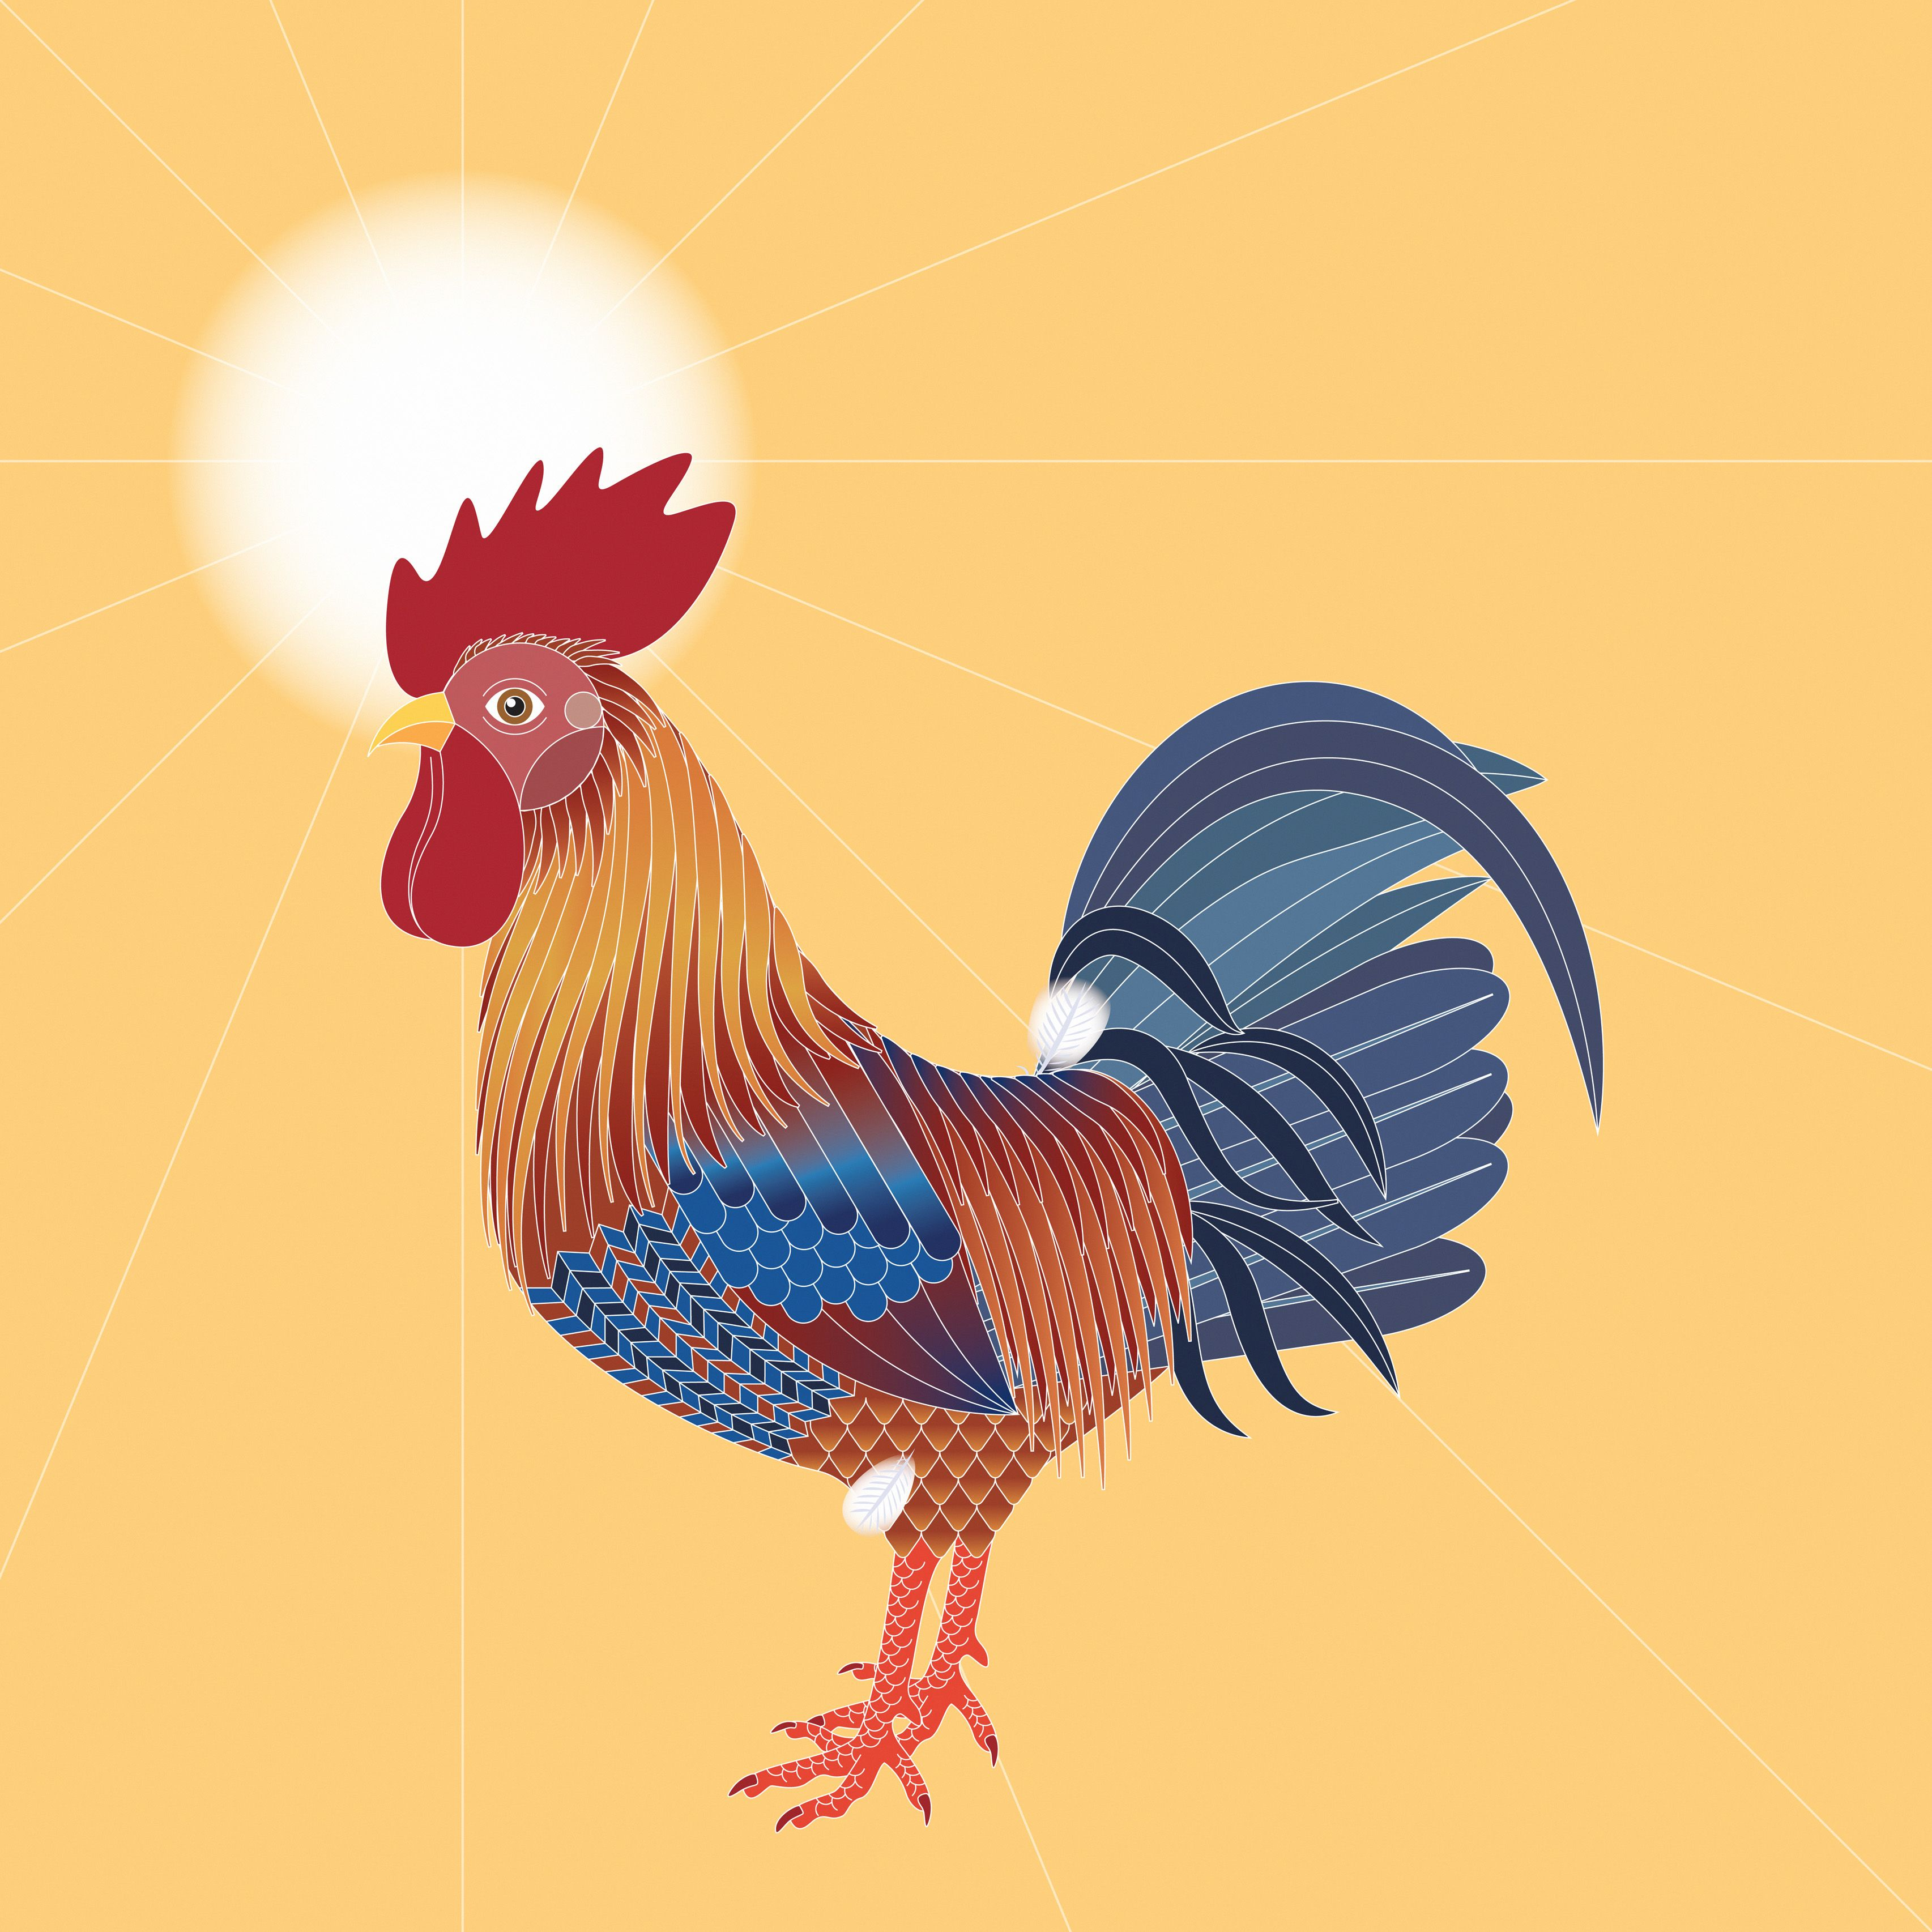 2017, Year of the Rooster #rooster #society6 #chicken #illustration #bird #chinese-zodiac #horoscope